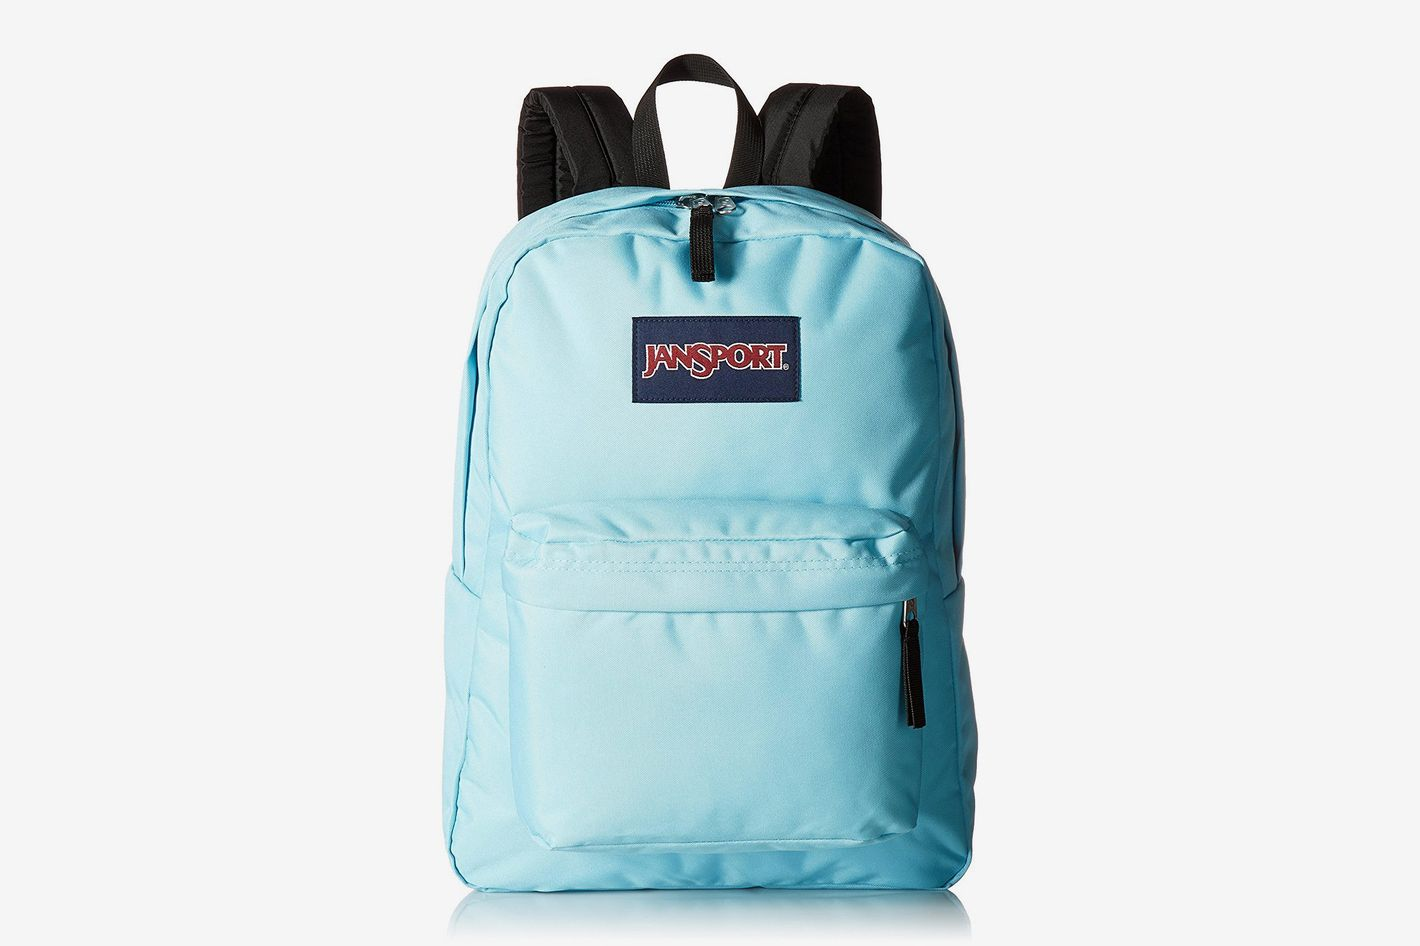 54fa12d529a3 9 Best Backpacks for Boys 2019